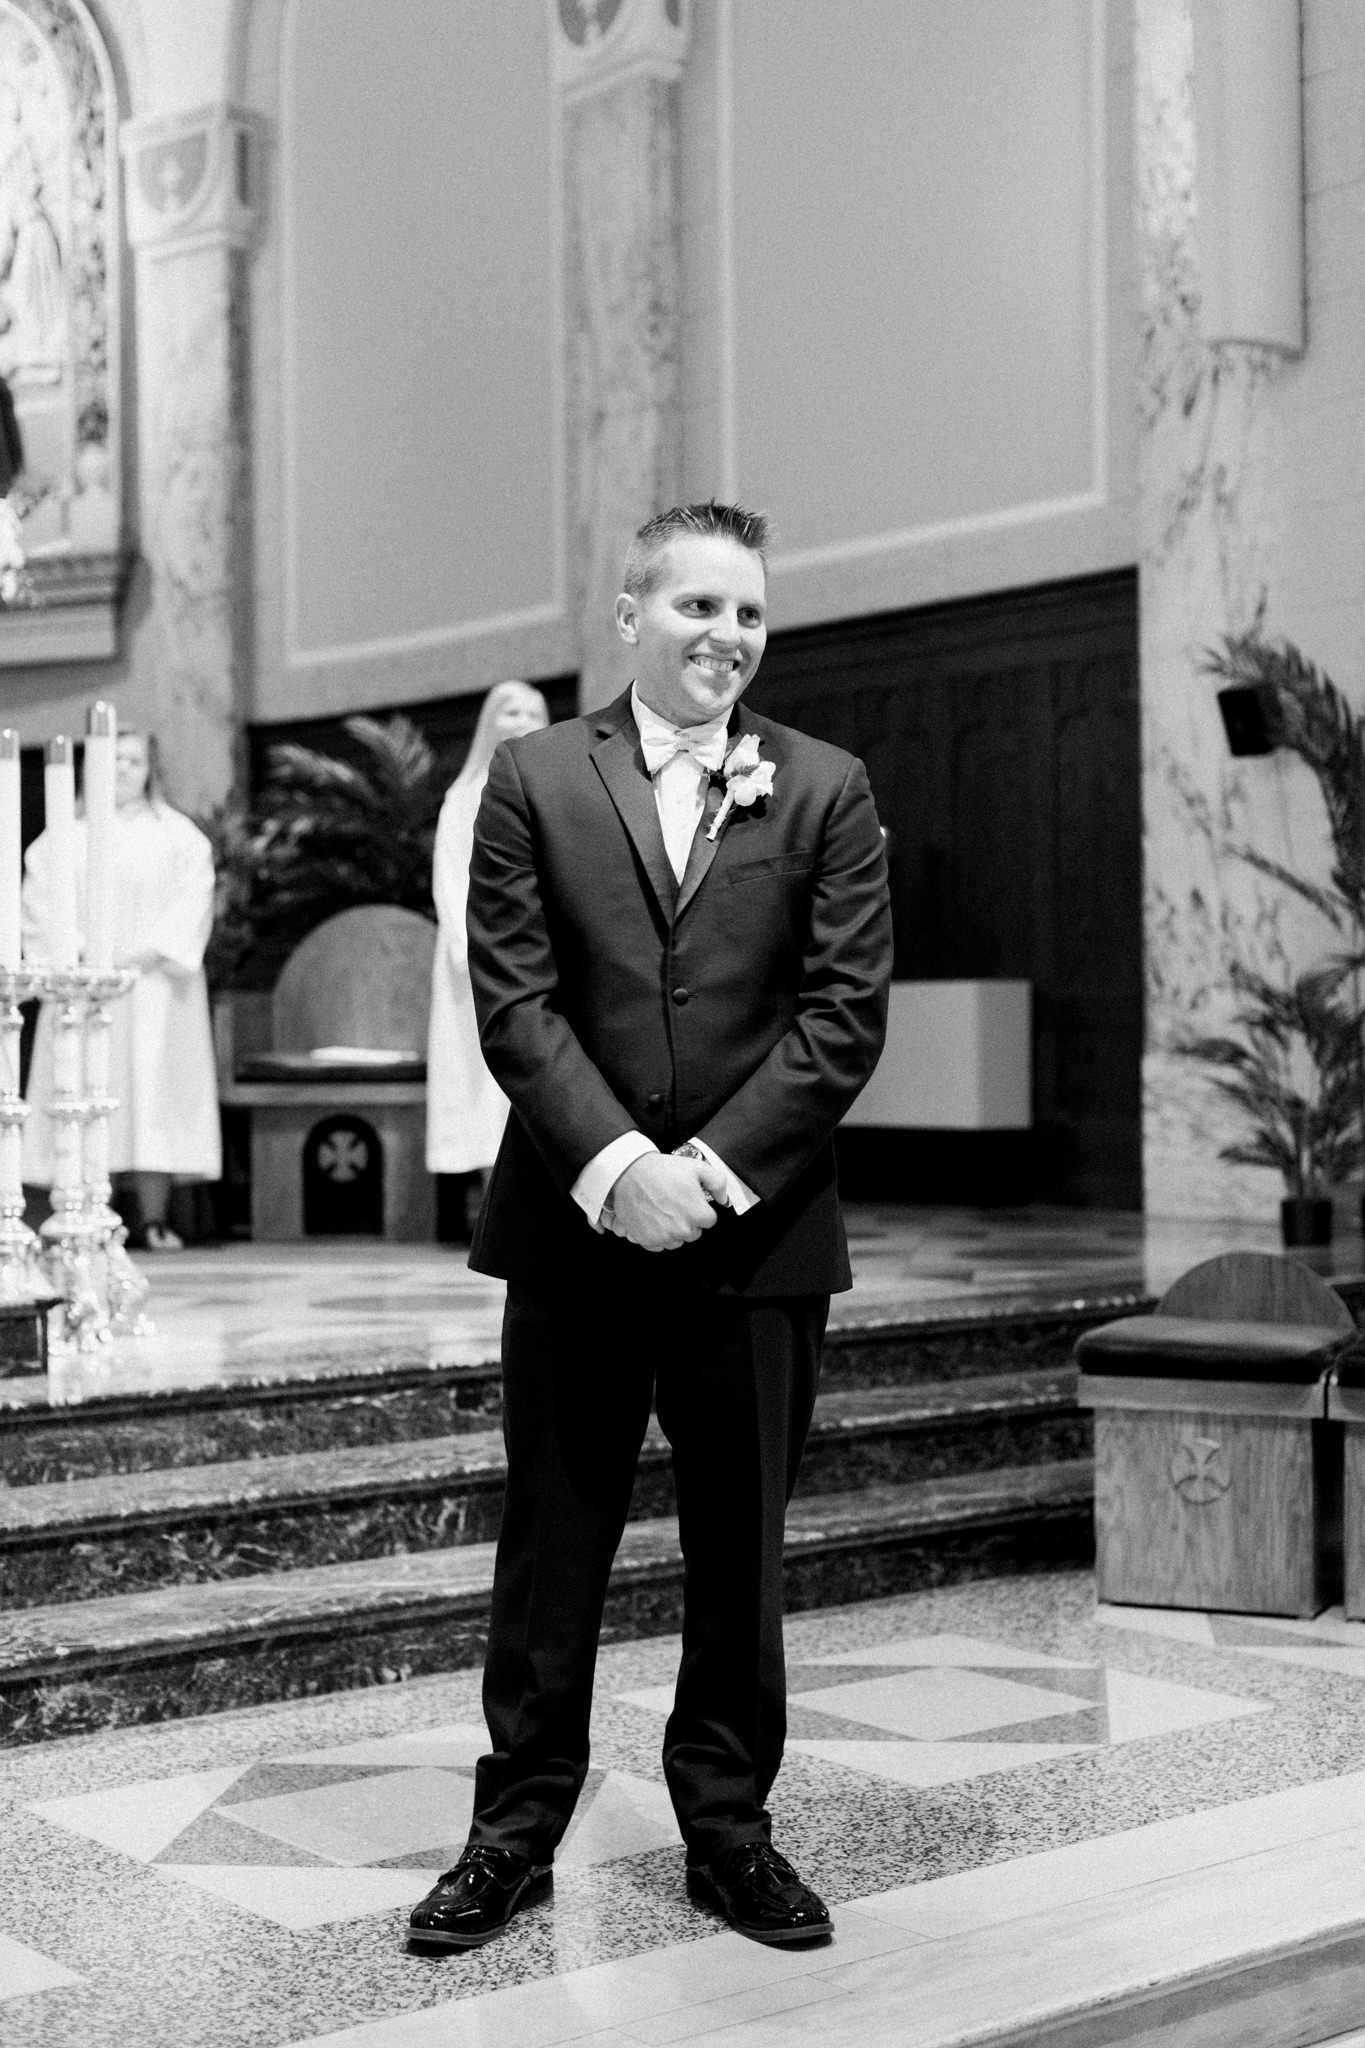 groom's first look, first sight of bride coming down the aisle at St. Agnes Catholic Church in Louisville Ky.